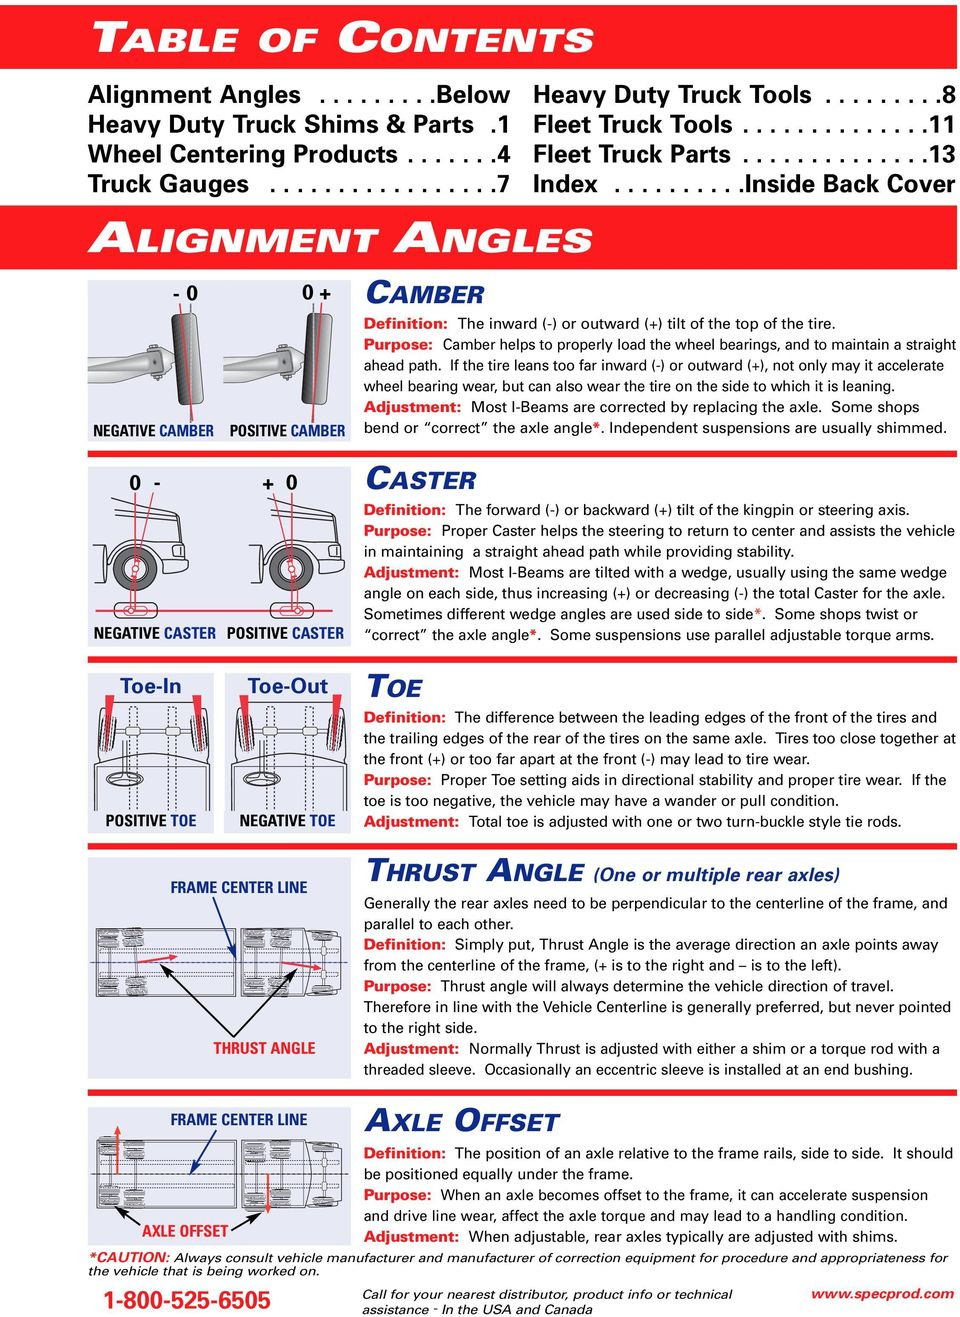 TABLE OF CONTENTS ALIGNMENT ANGLES - PDF